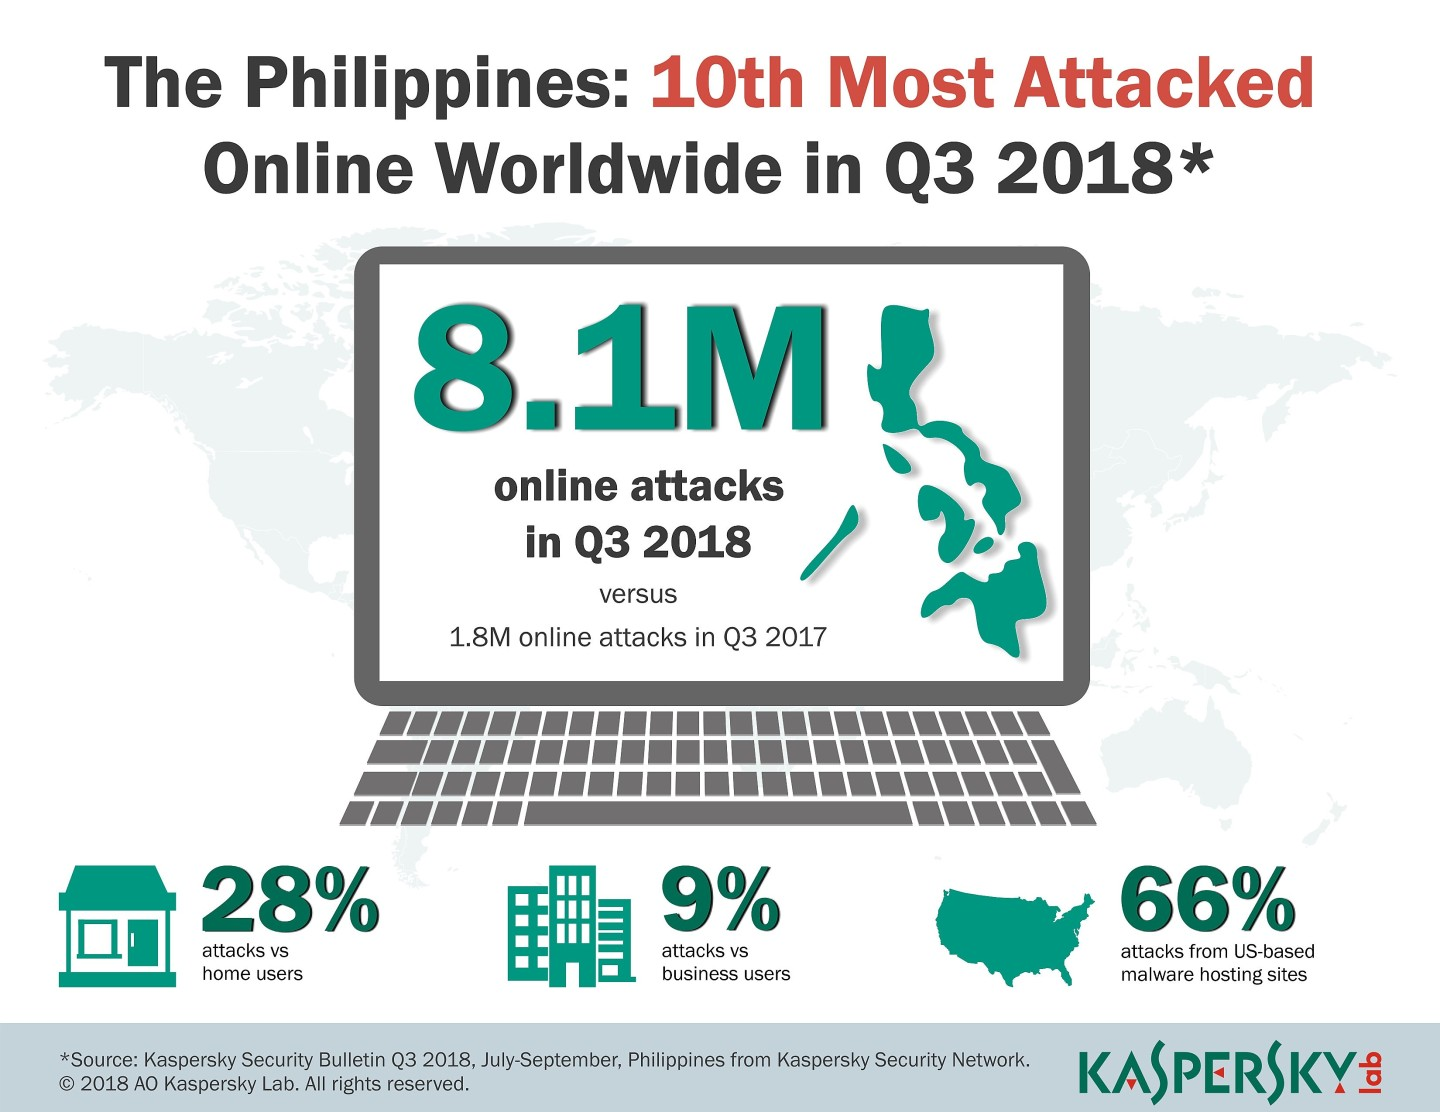 Most attacked - Science and Digital News